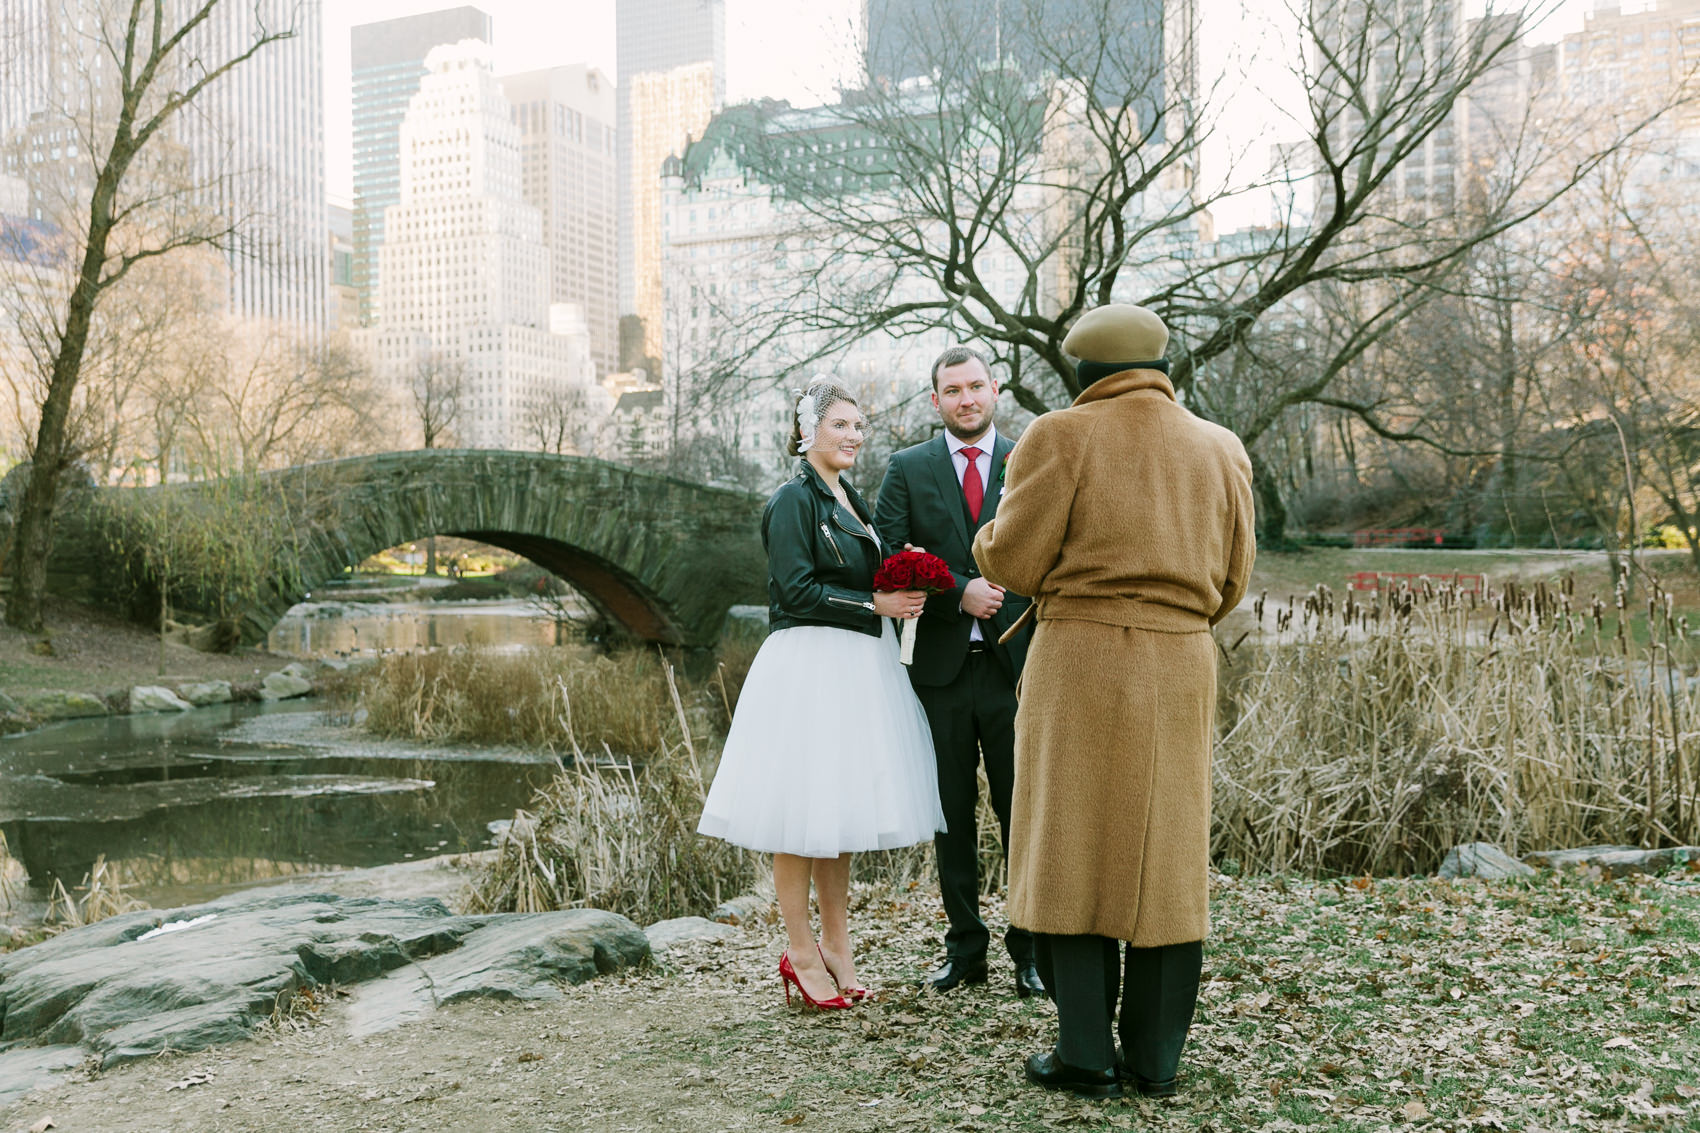 NYC-wedding-photos-by-Tanya-Isaeva-17.jpg